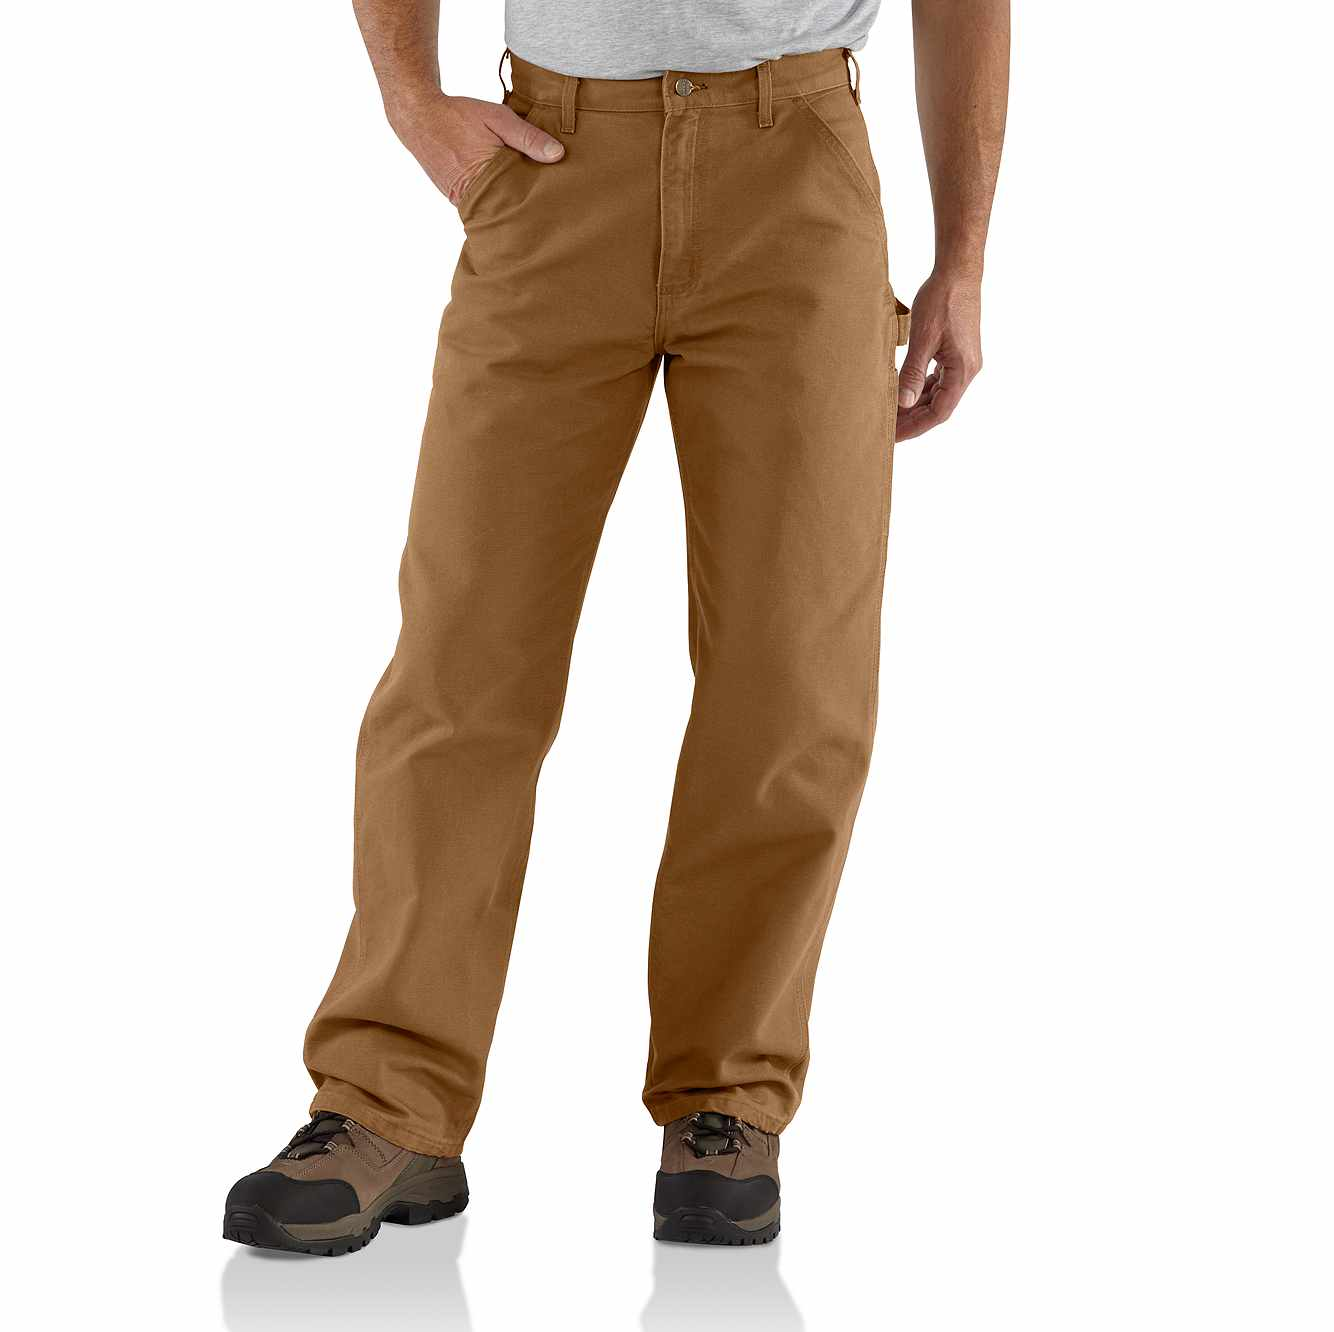 8340ca44d8 Washed Duck Work Pant